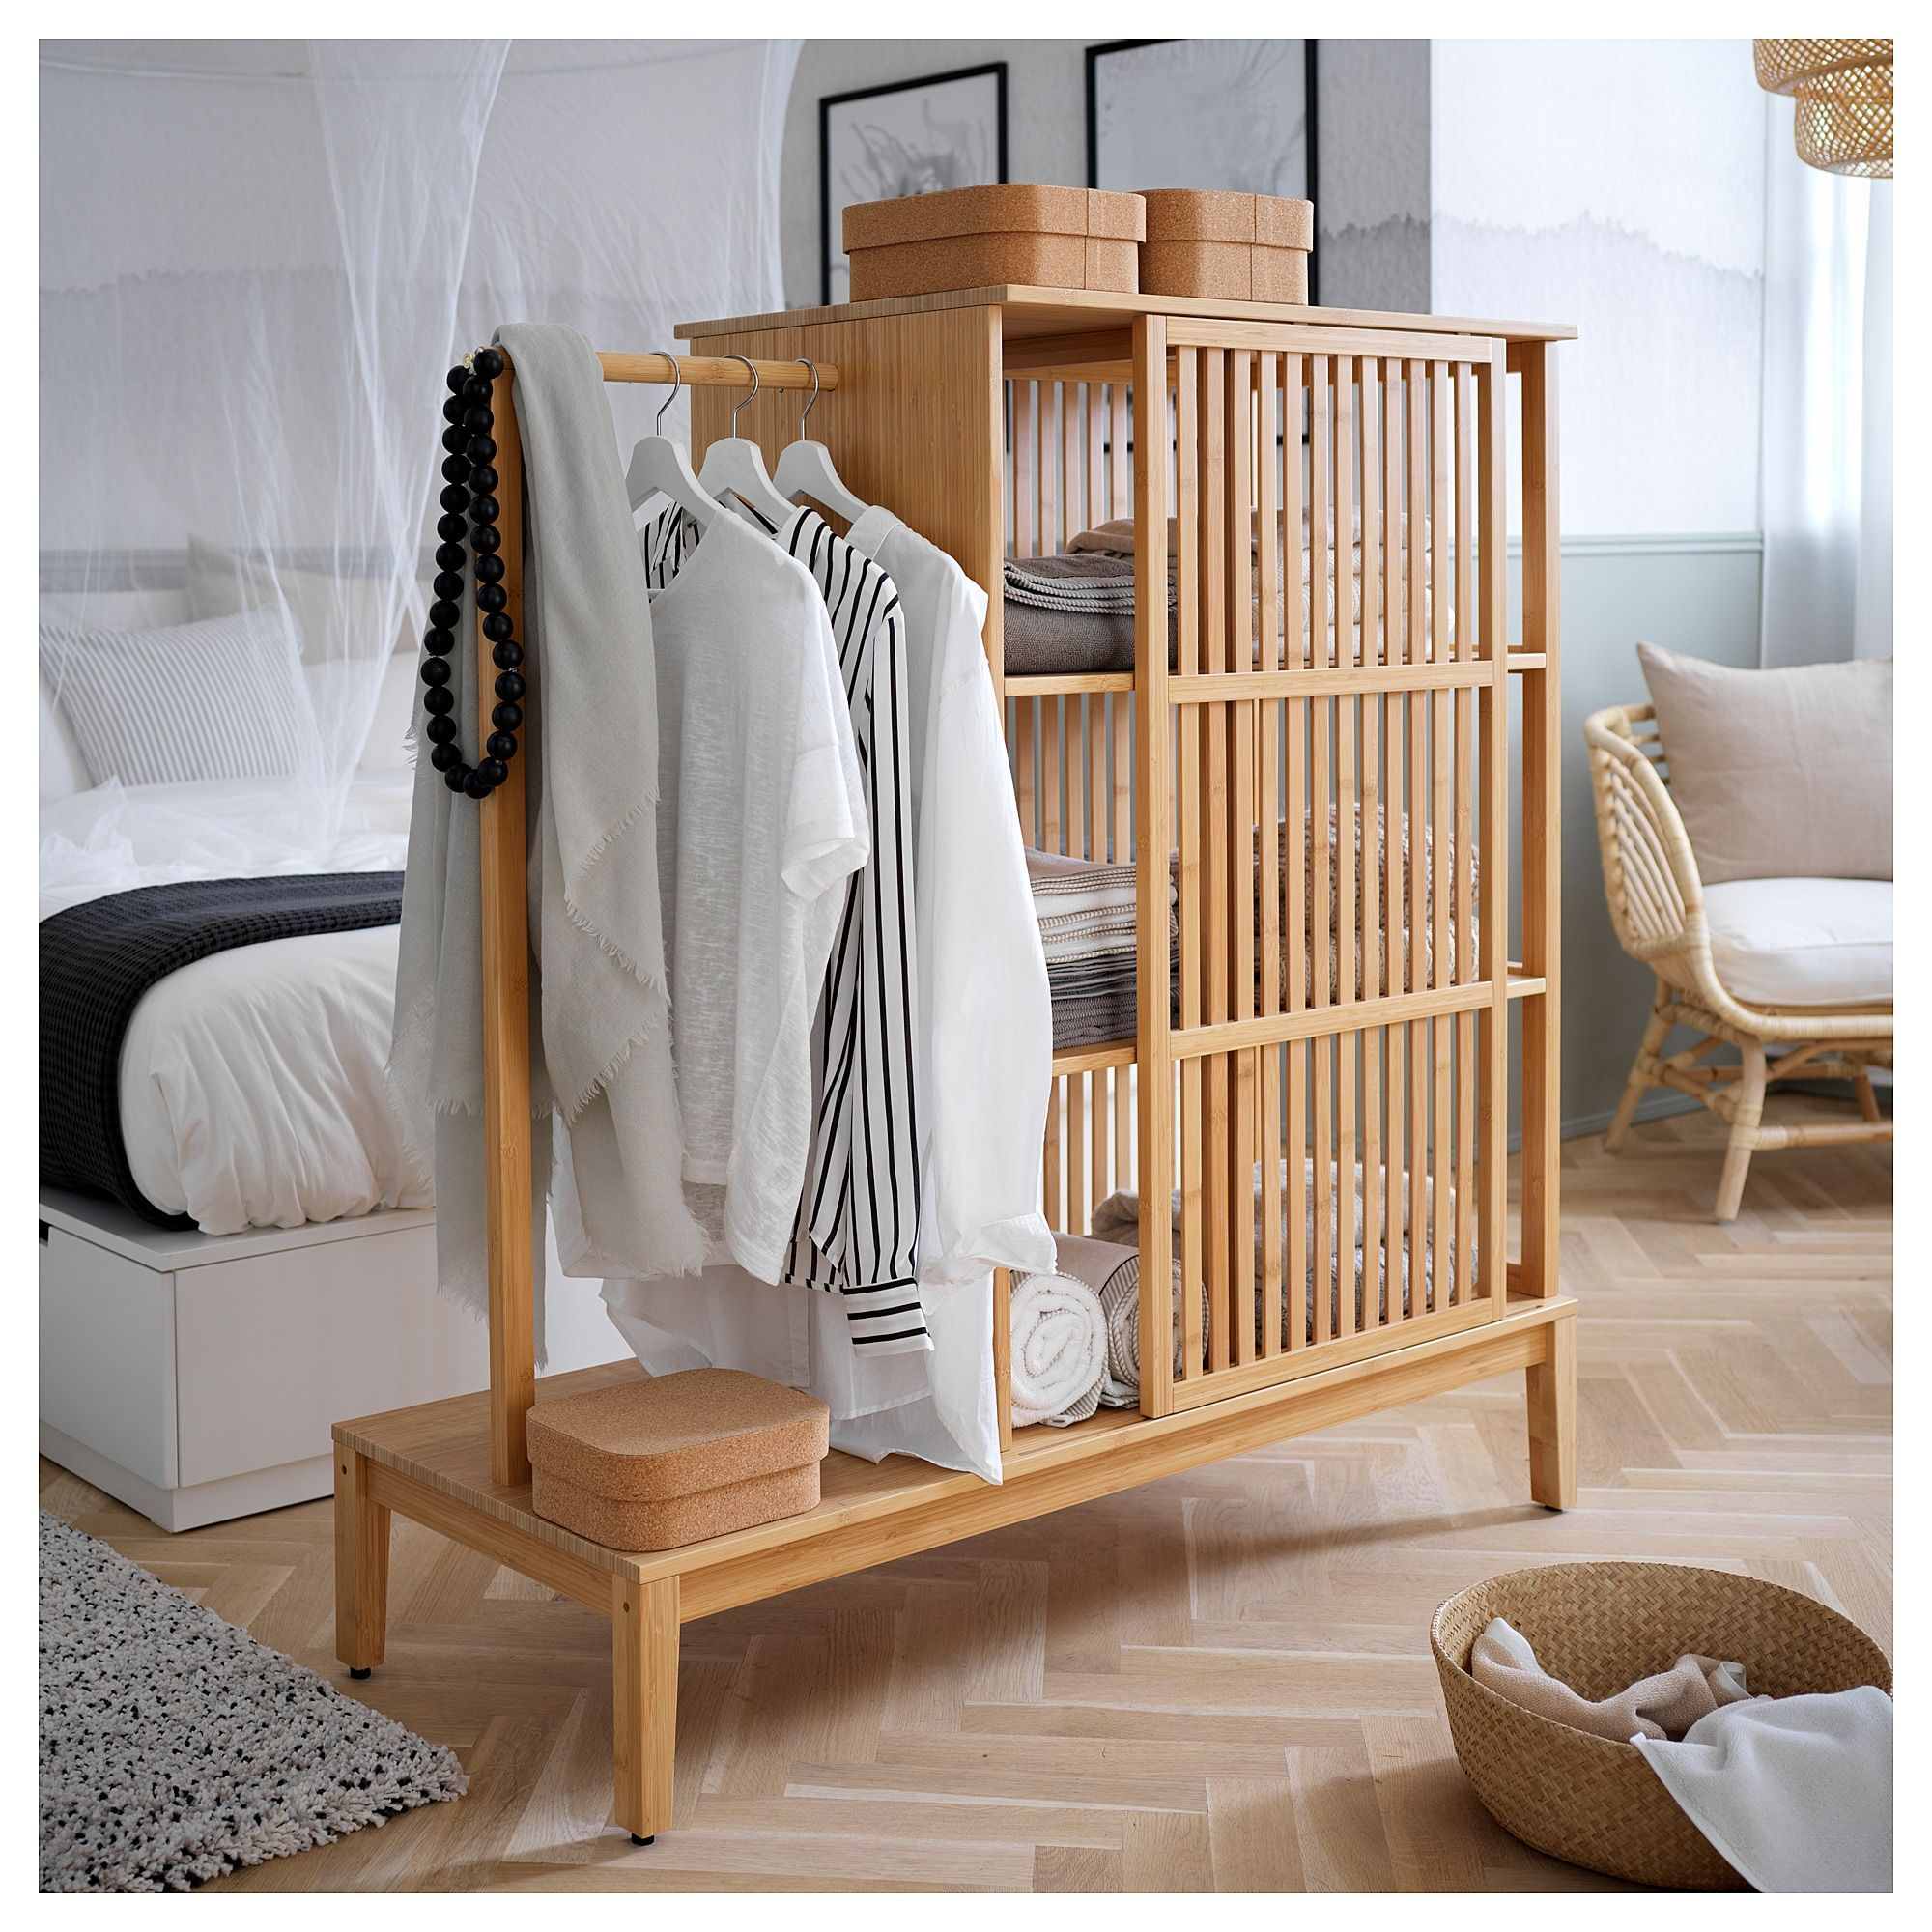 Nordkisa Bamboo Open Wardrobe With Sliding Door Width 120 Cm Height 123 Cm Ikea In 2020 Sliding Wardrobe Doors Open Wardrobe Ikea Bedroom Furniture